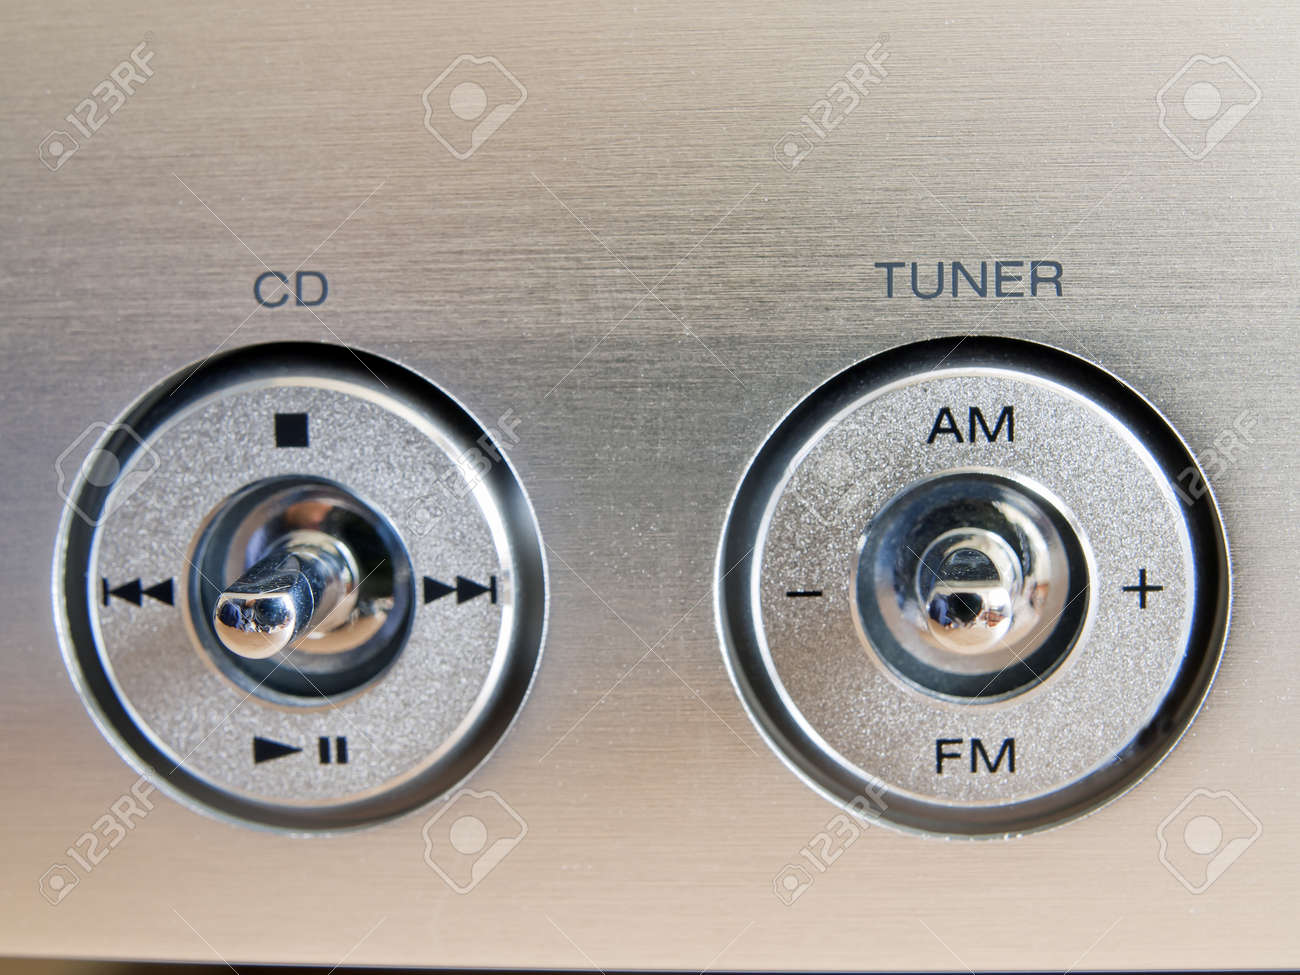 aluminum buttons radio and cd player Stock Photo - 16834888